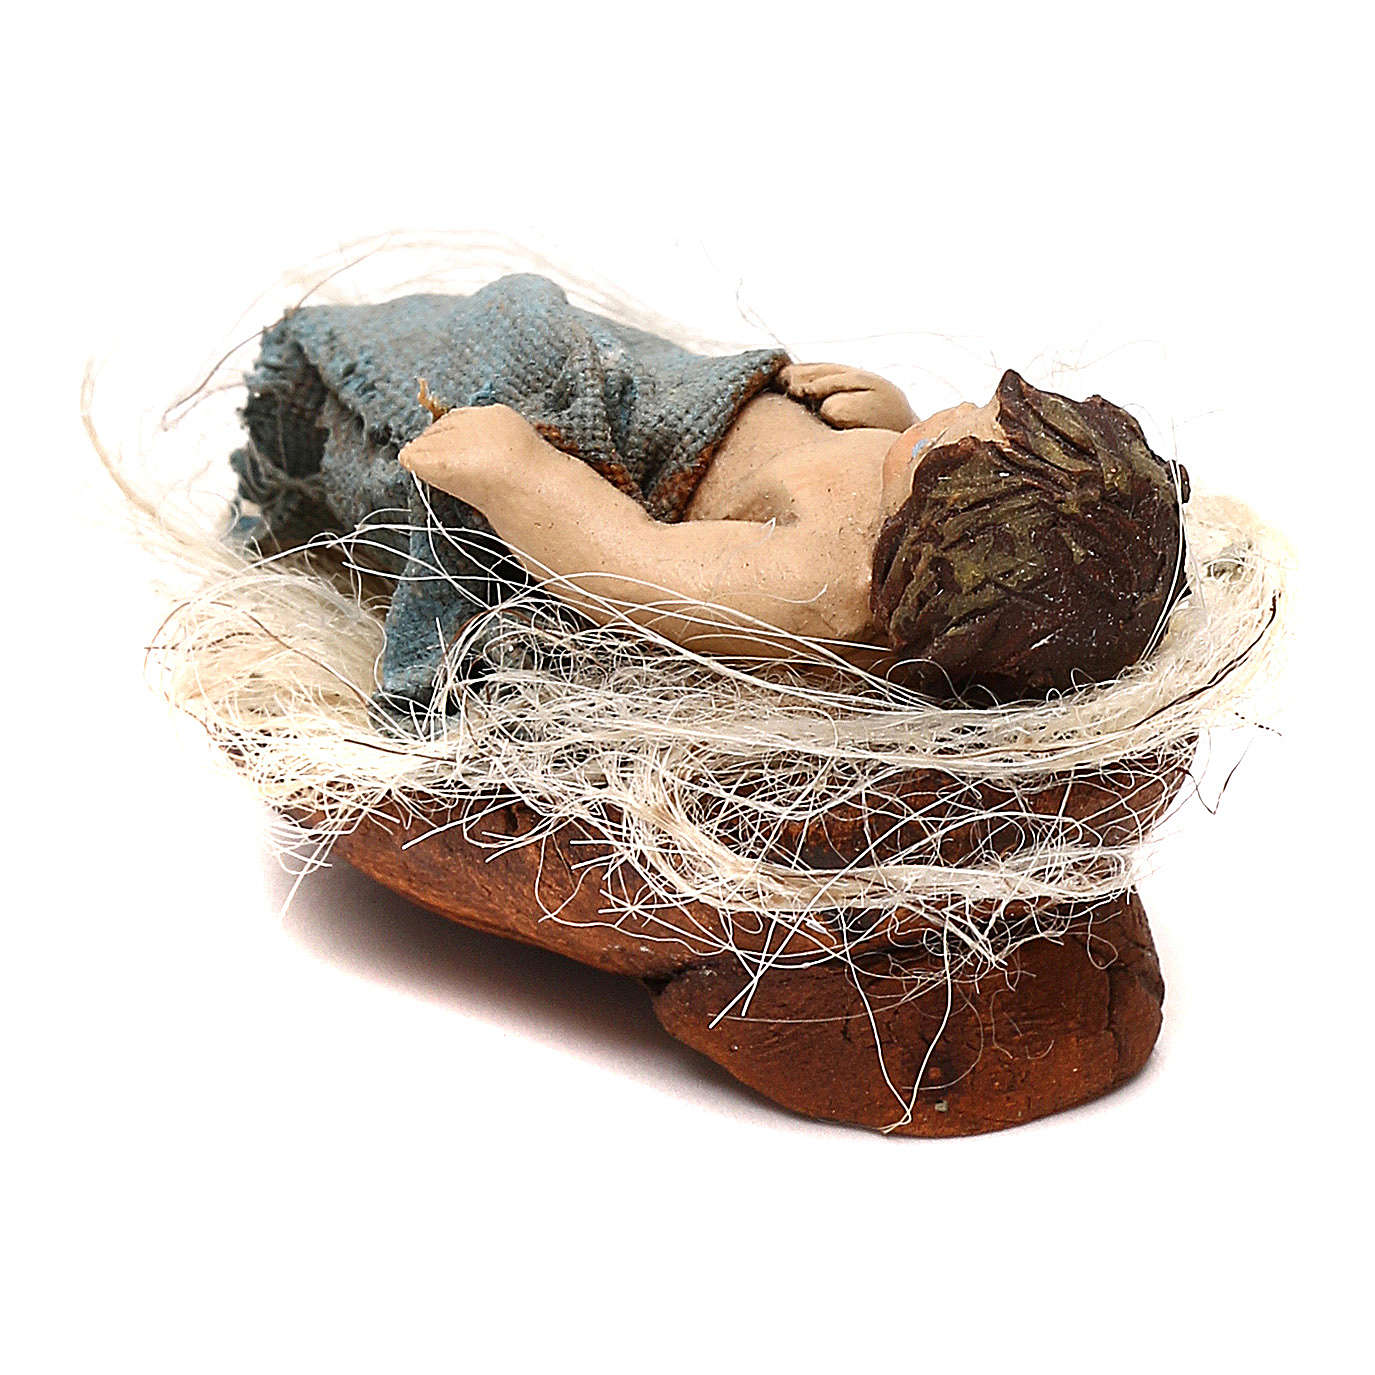 STOCK Baby Jesus in the manger, Neapolitan Nativity scene 10 cm 4